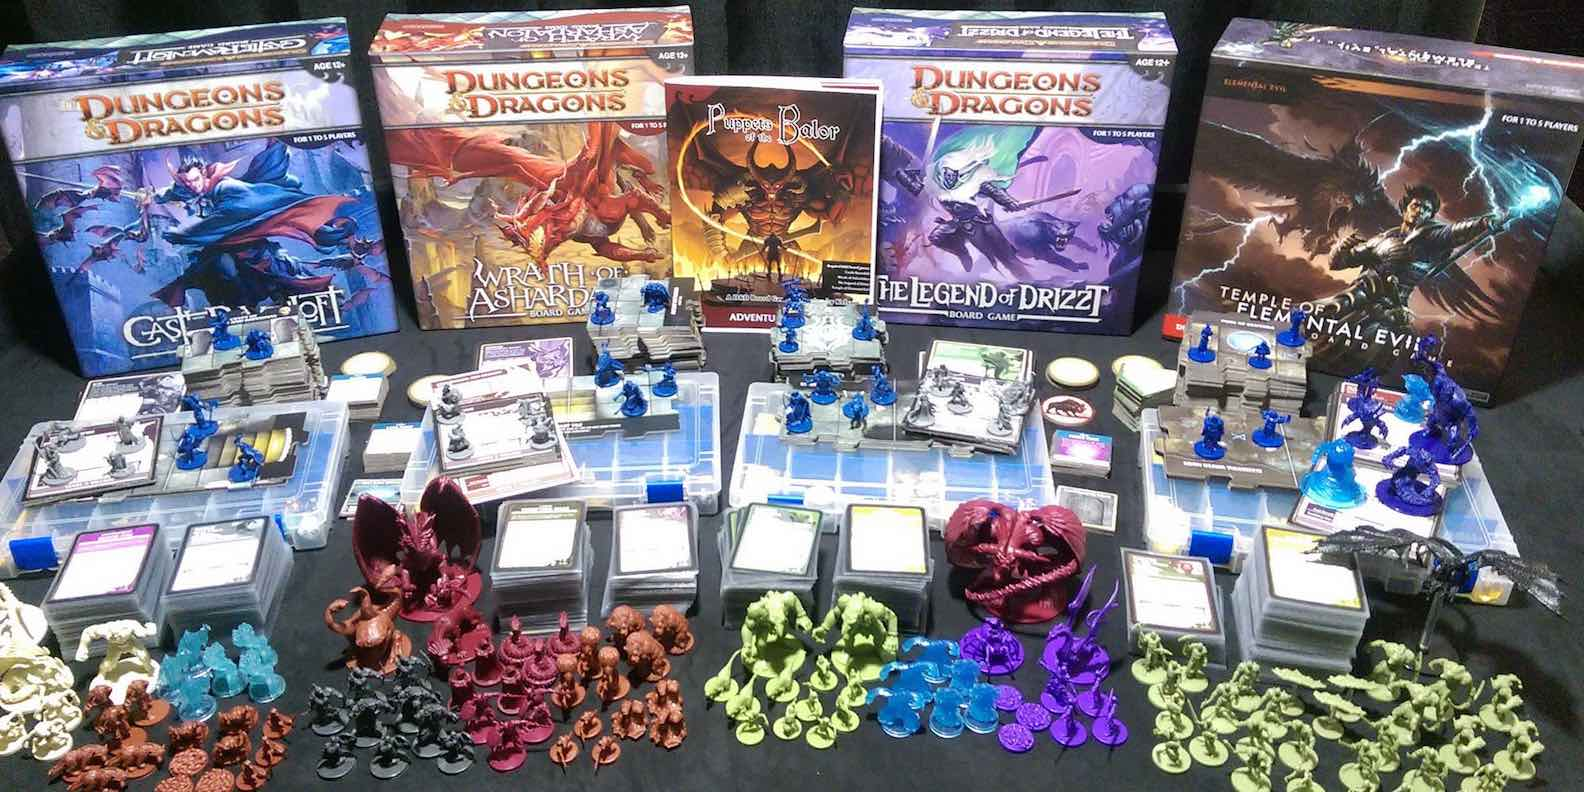 Dungeons amp Dragons The game comes to life on TV ndash Film Daily